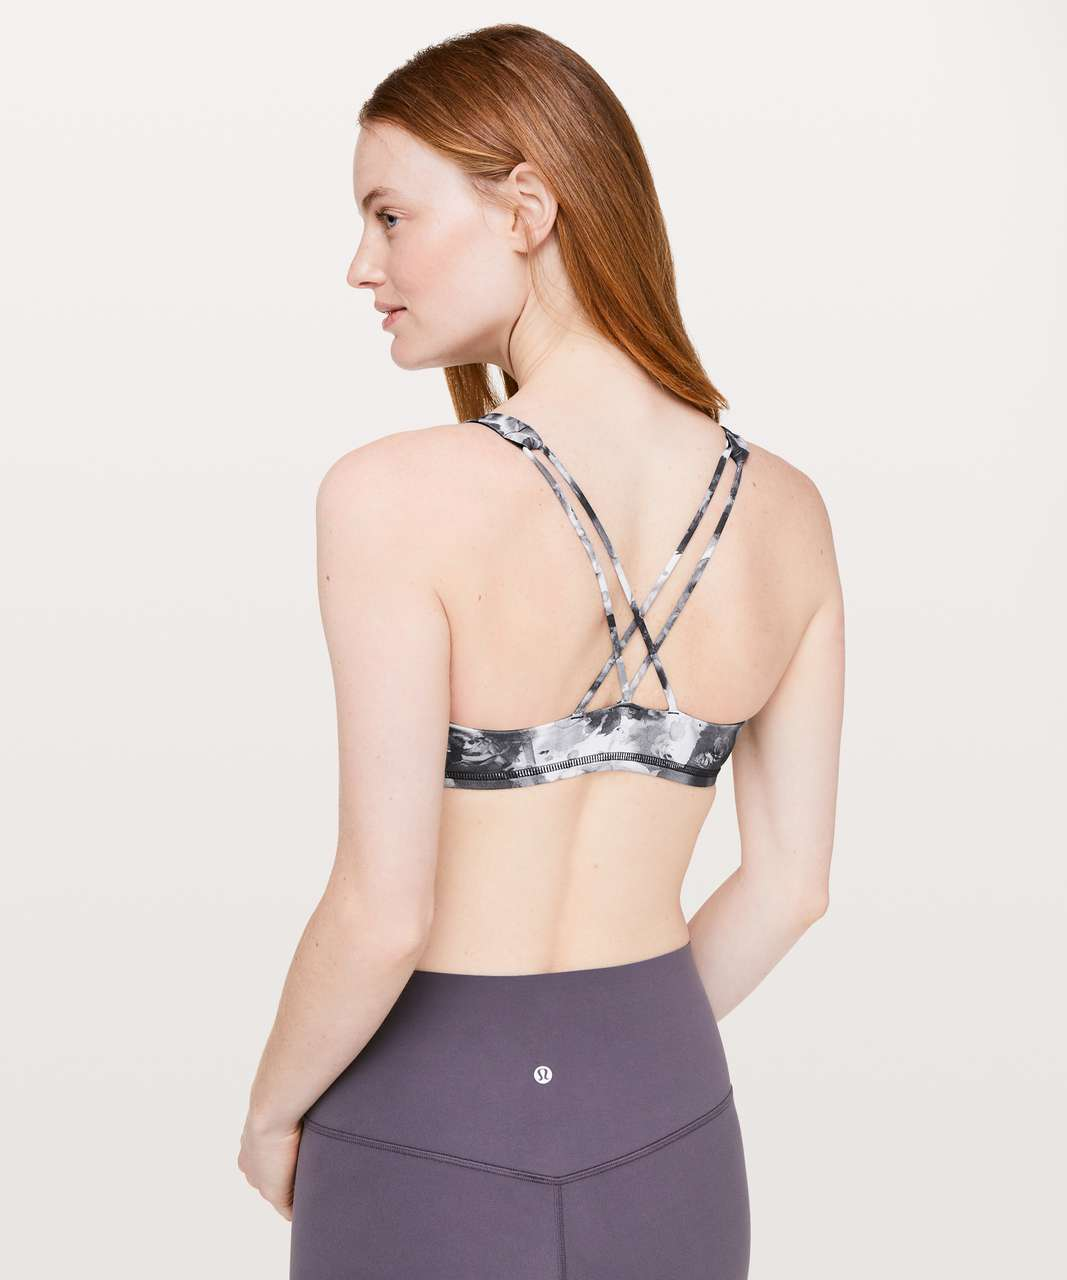 Lululemon Free To Be Bra - Mini Obscurred Black Dusty Mauve